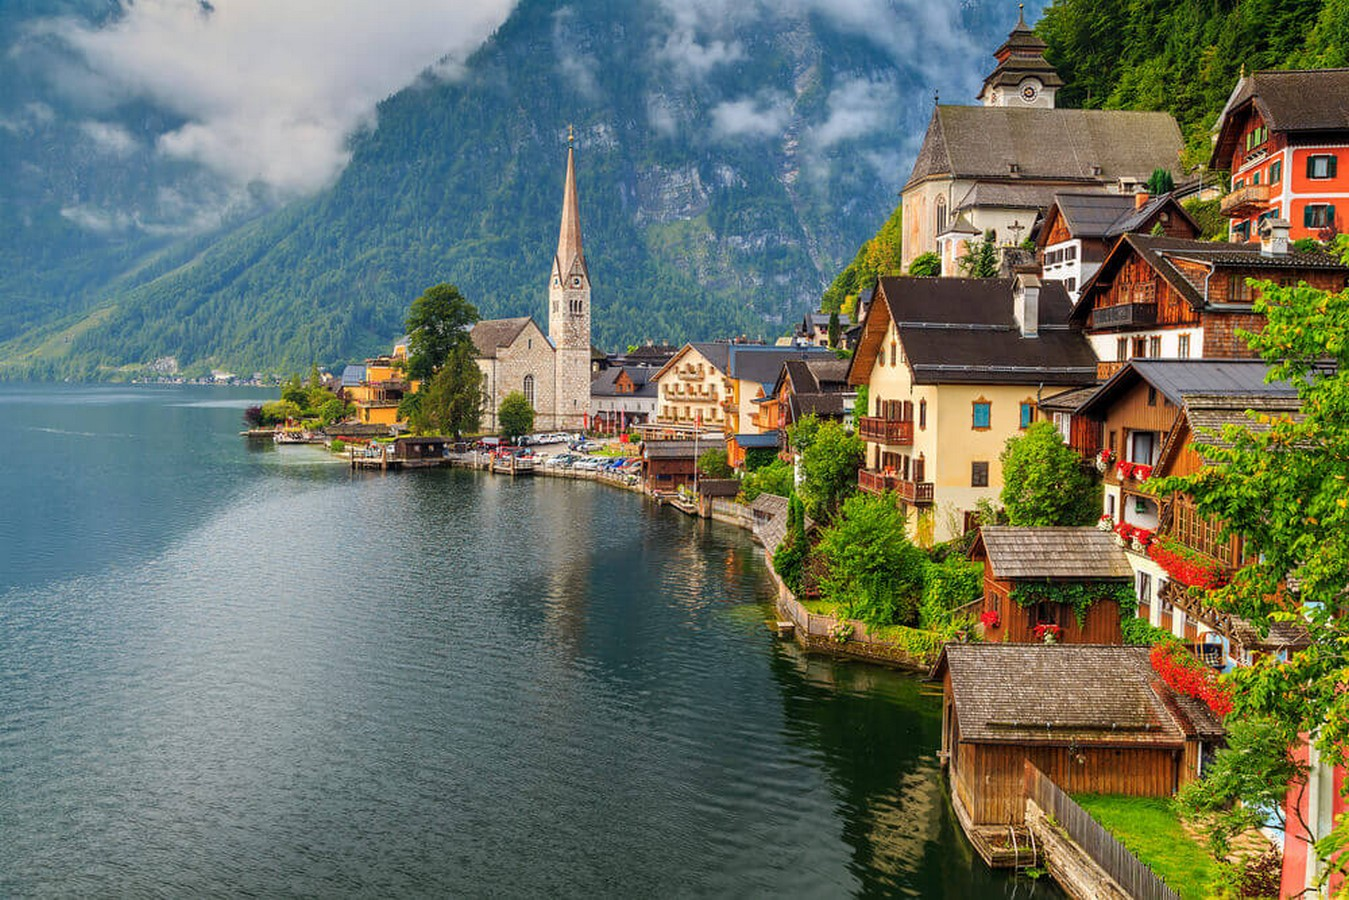 15 Famous villages around the world, that architects must visit - Sheet1